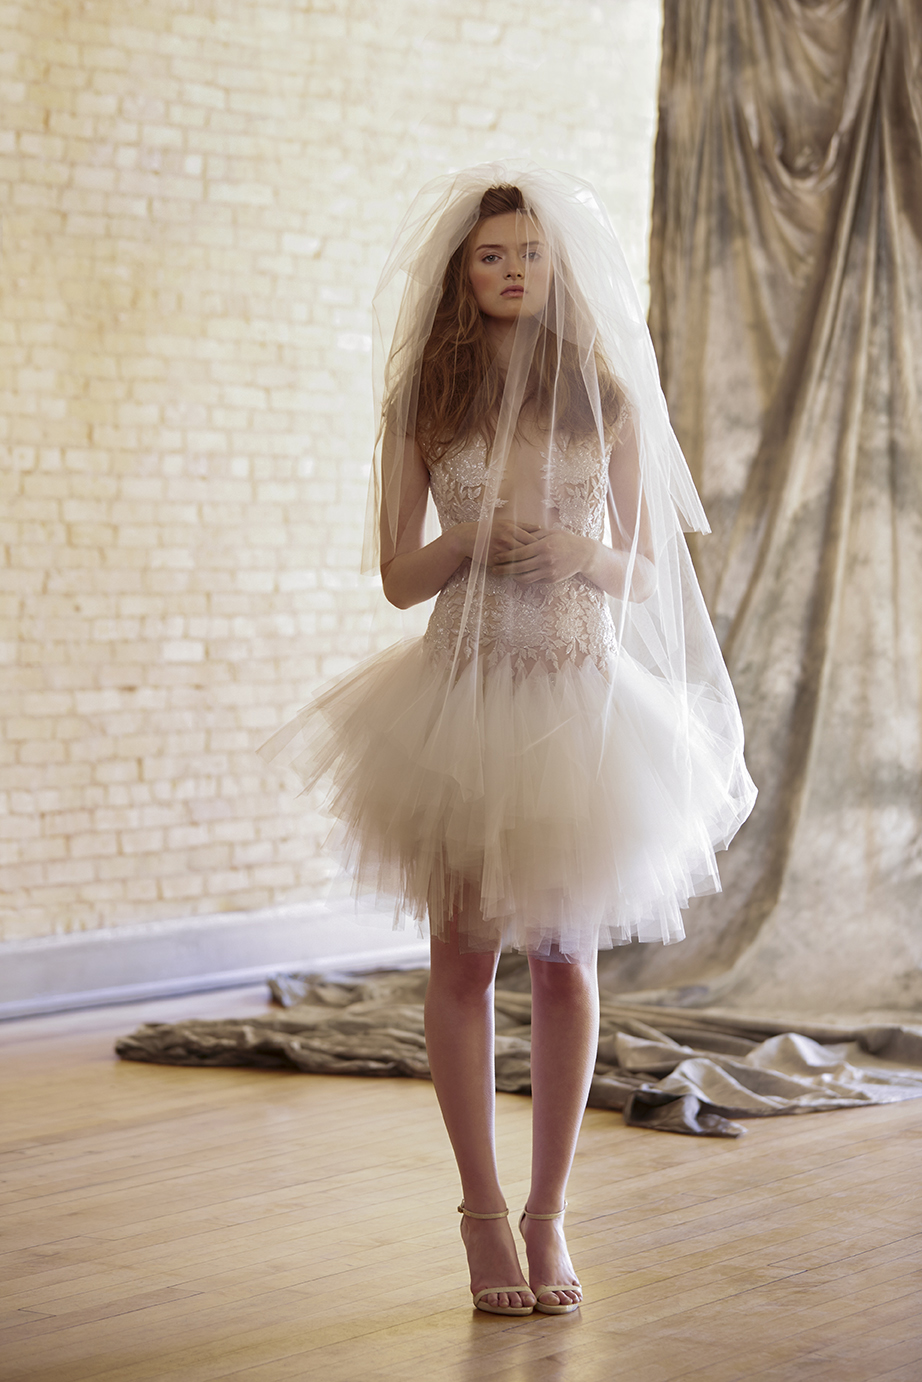 retouched bride standing in studio wearing short tutu wedding dress and veil